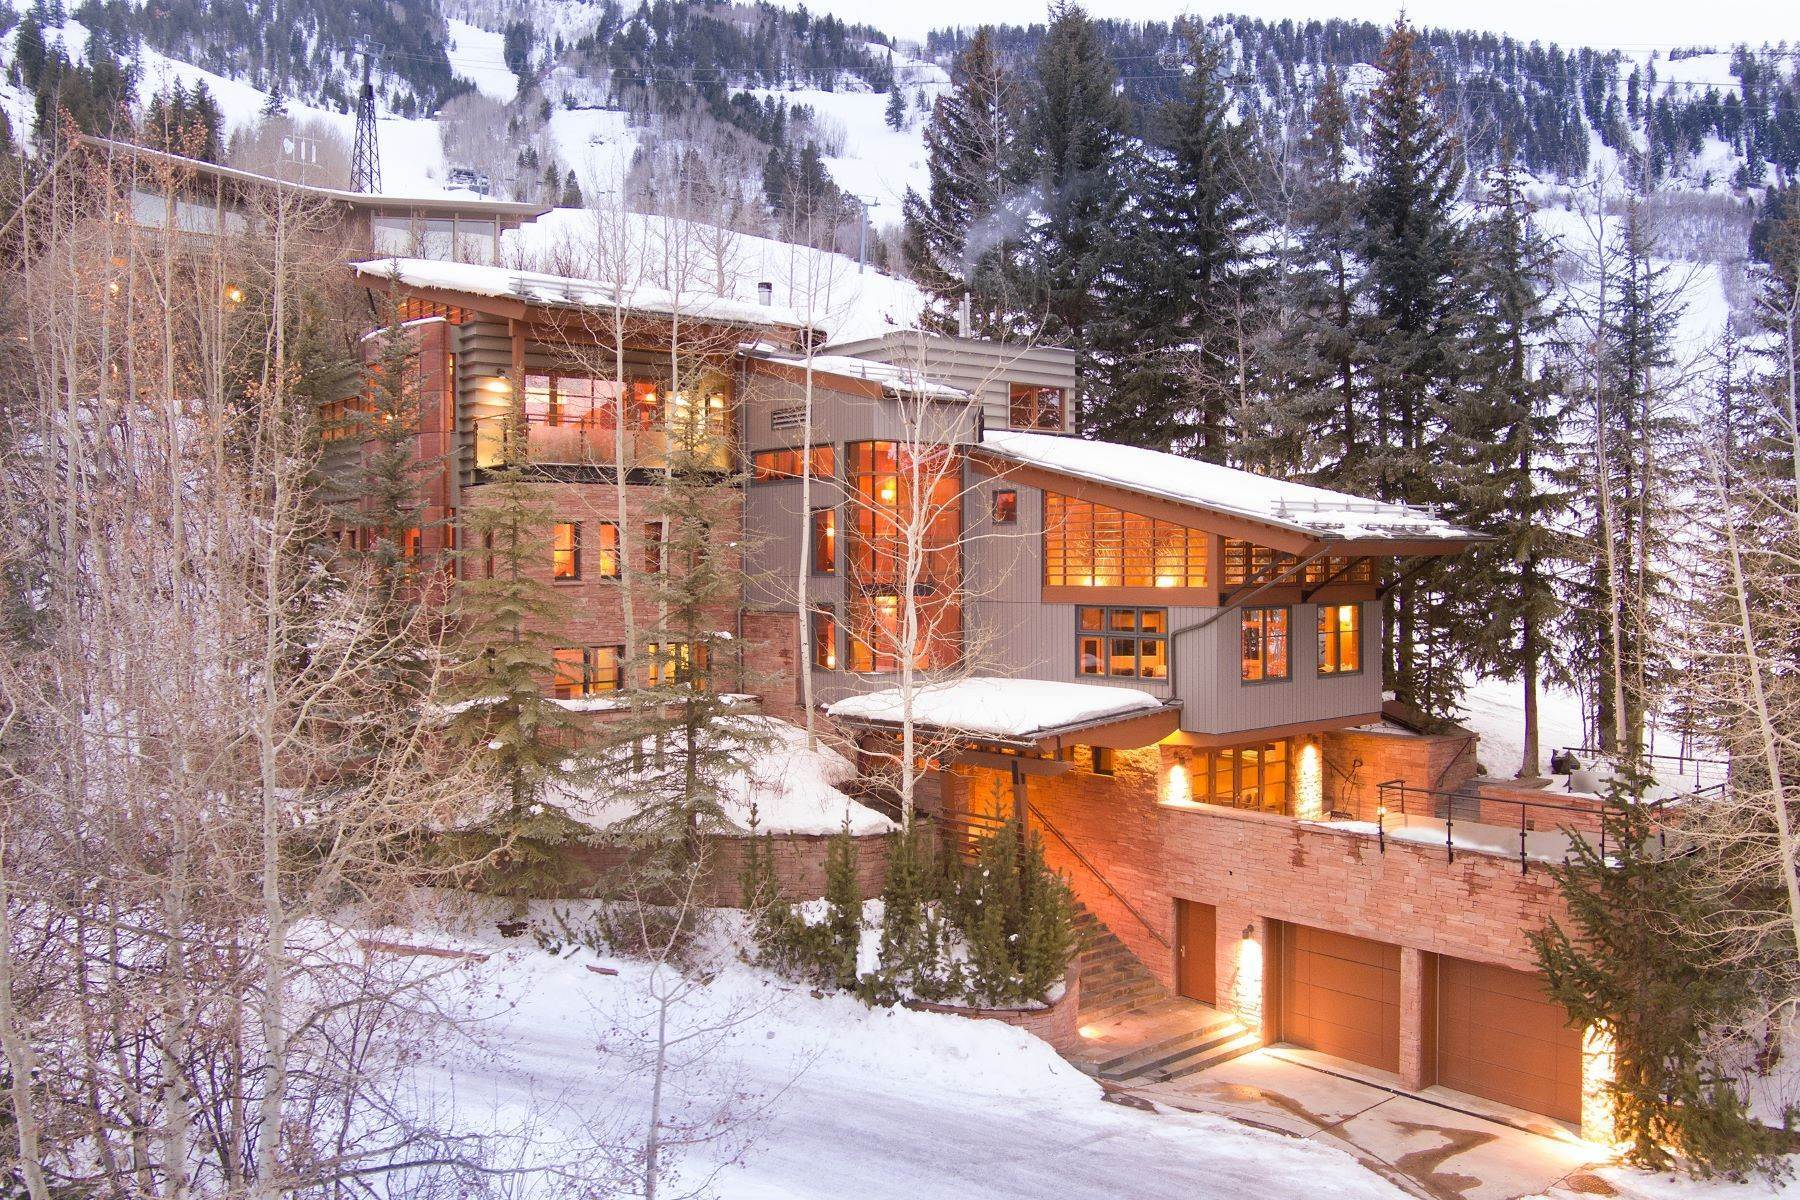 Single Family Homes for Active at The House on Little Nell 550 Aspen Alps Road Aspen, Colorado 81611 United States